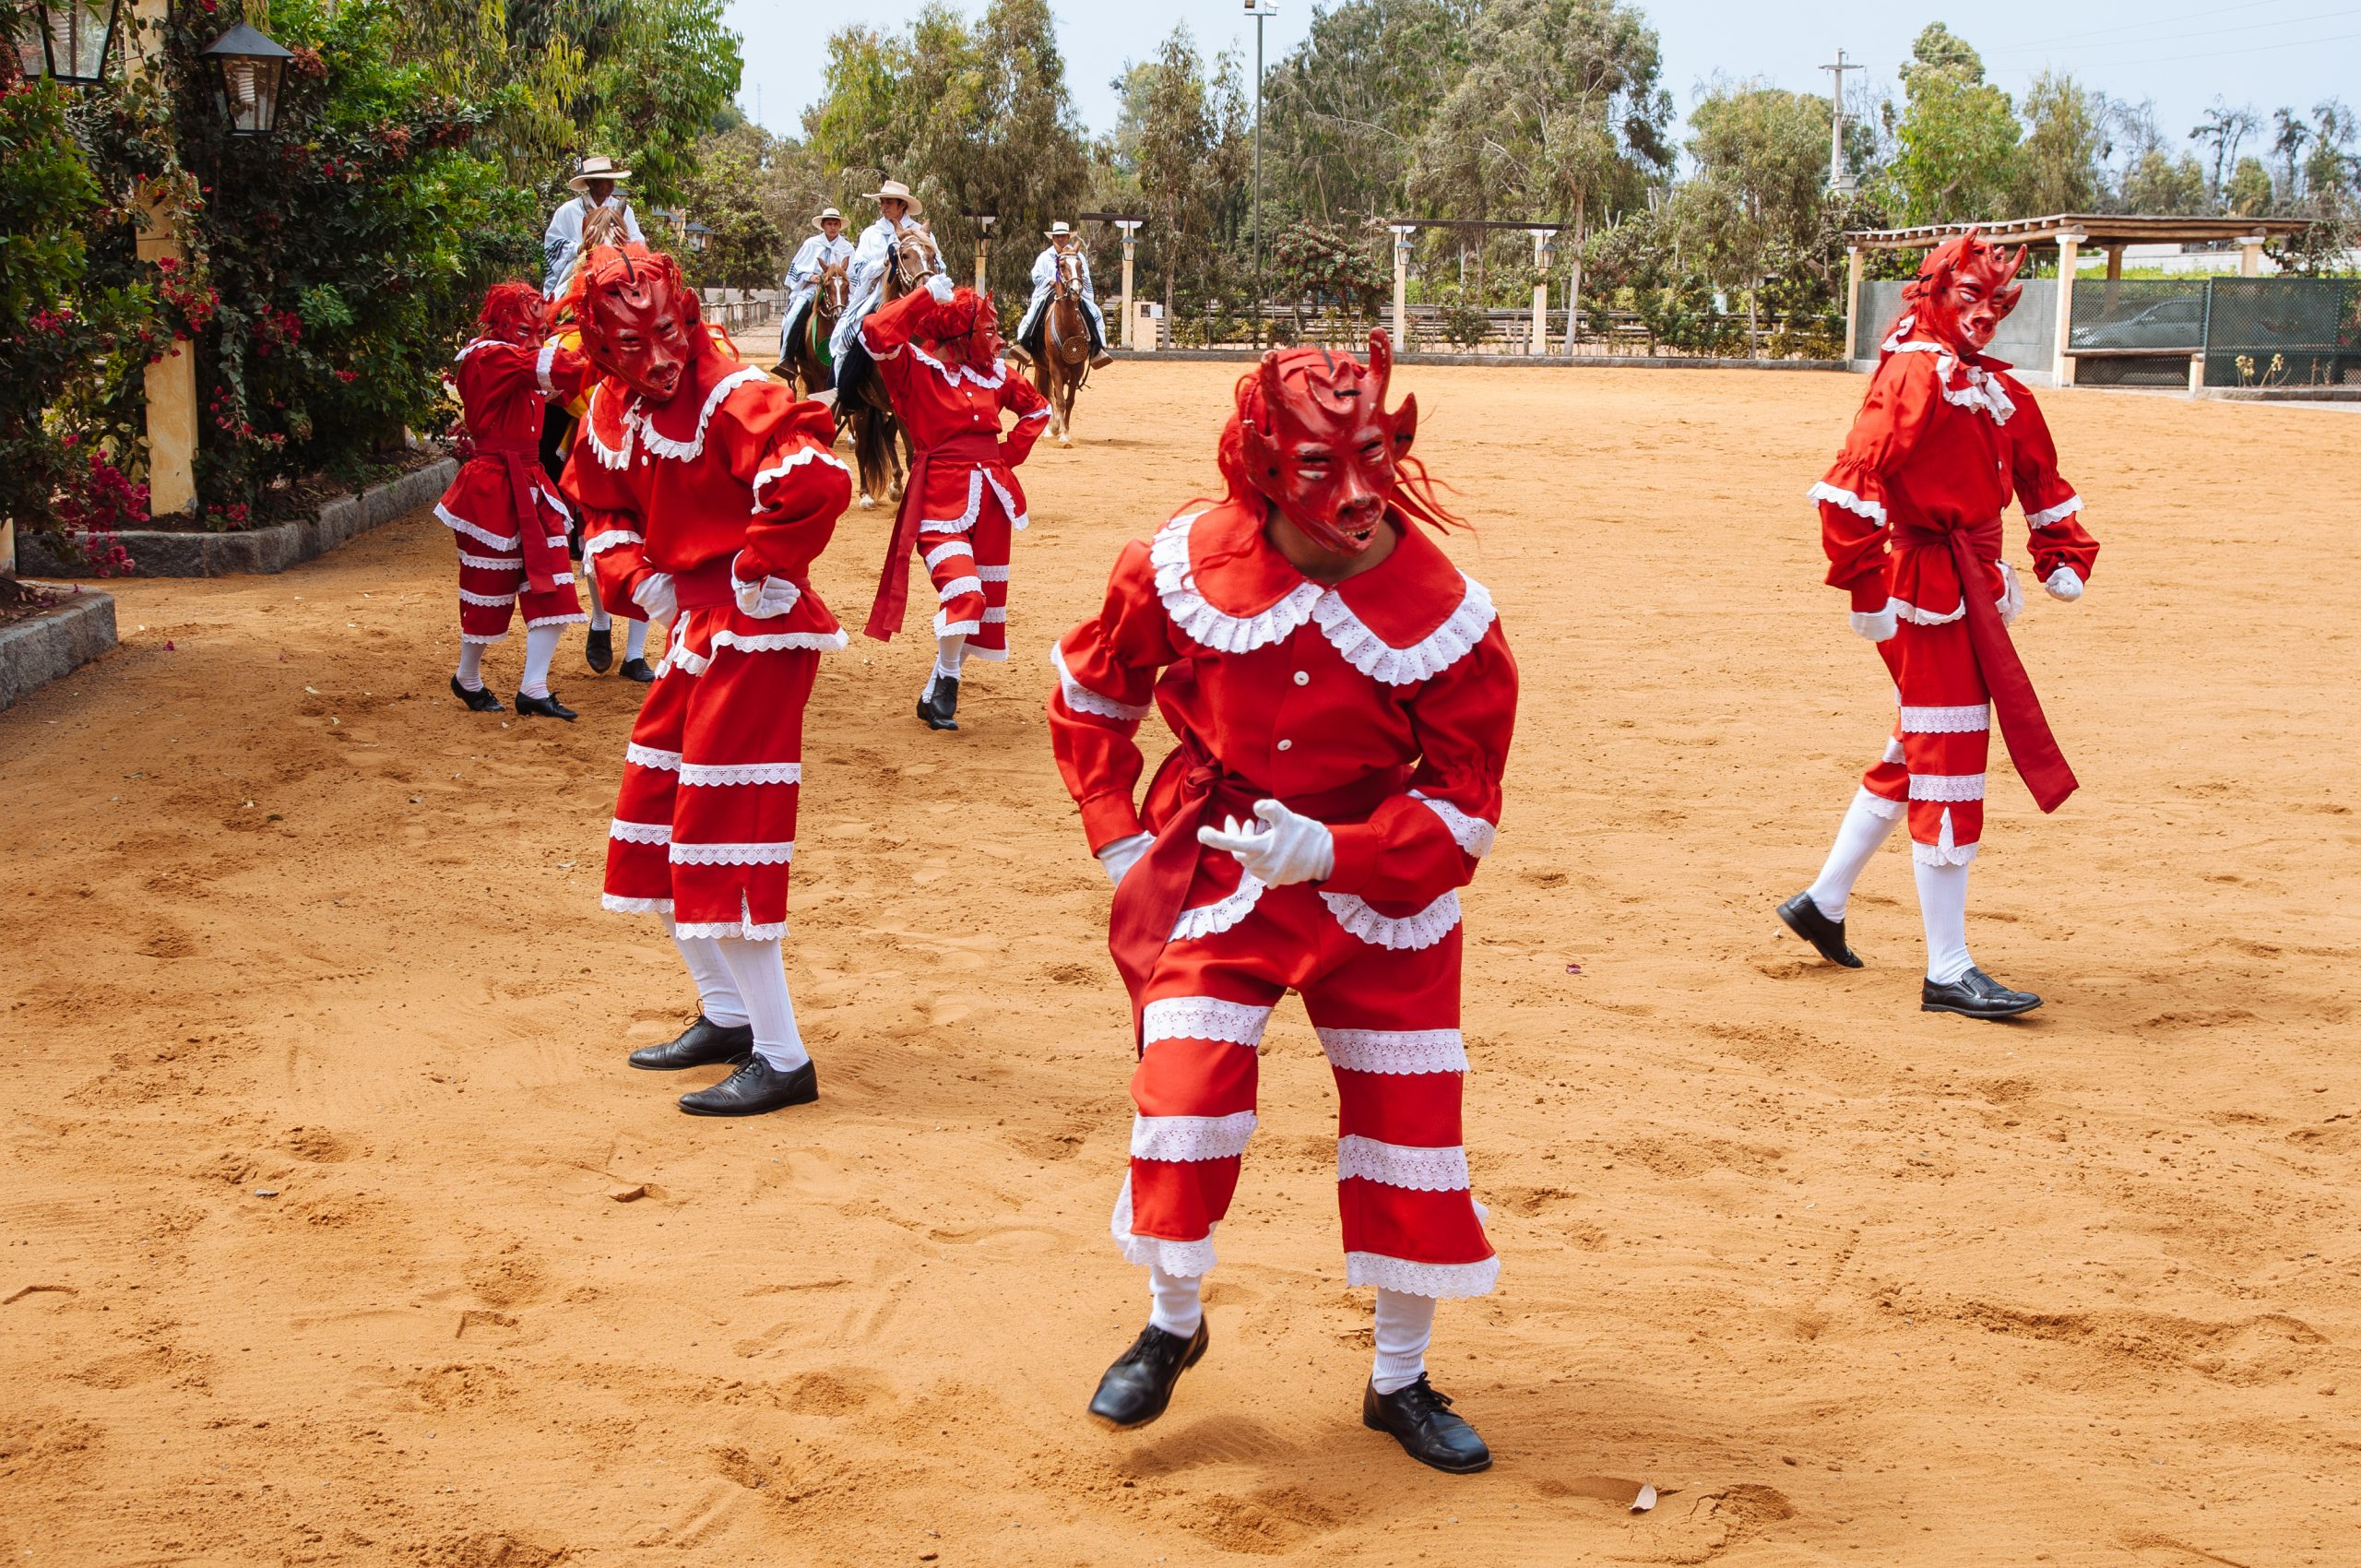 Performers doing the Dance of the Devils' at Hacienda Mamacona